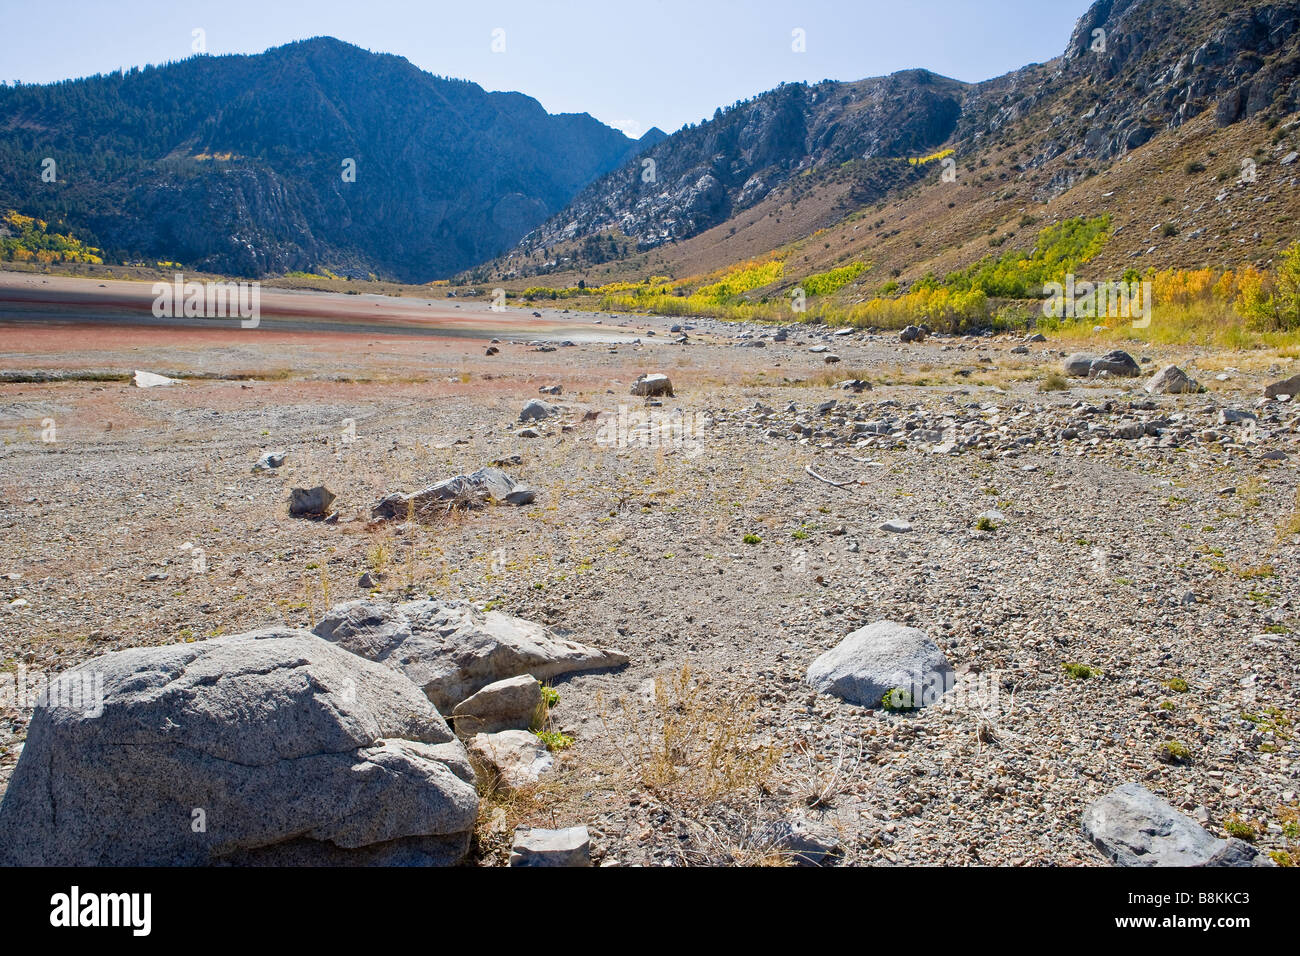 Grant Lake nearly empty due to drought June Lake Loop Sierra Nevada Mountains California United States of America - Stock Image